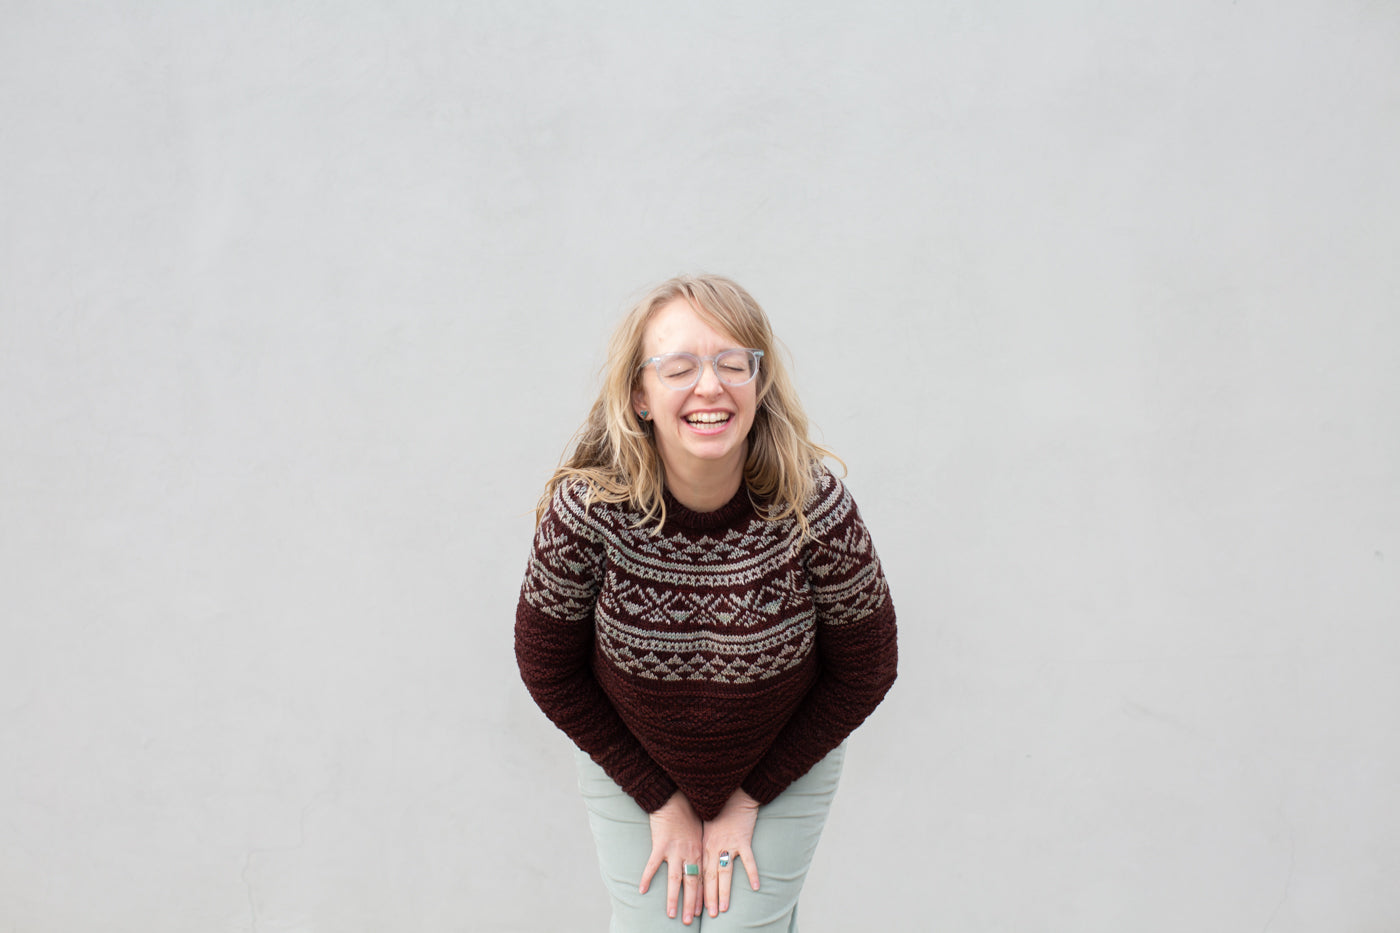 Amber doubled over laughing in front of a white wall wearing a burgundy/mint knitted sweater and light green pants.